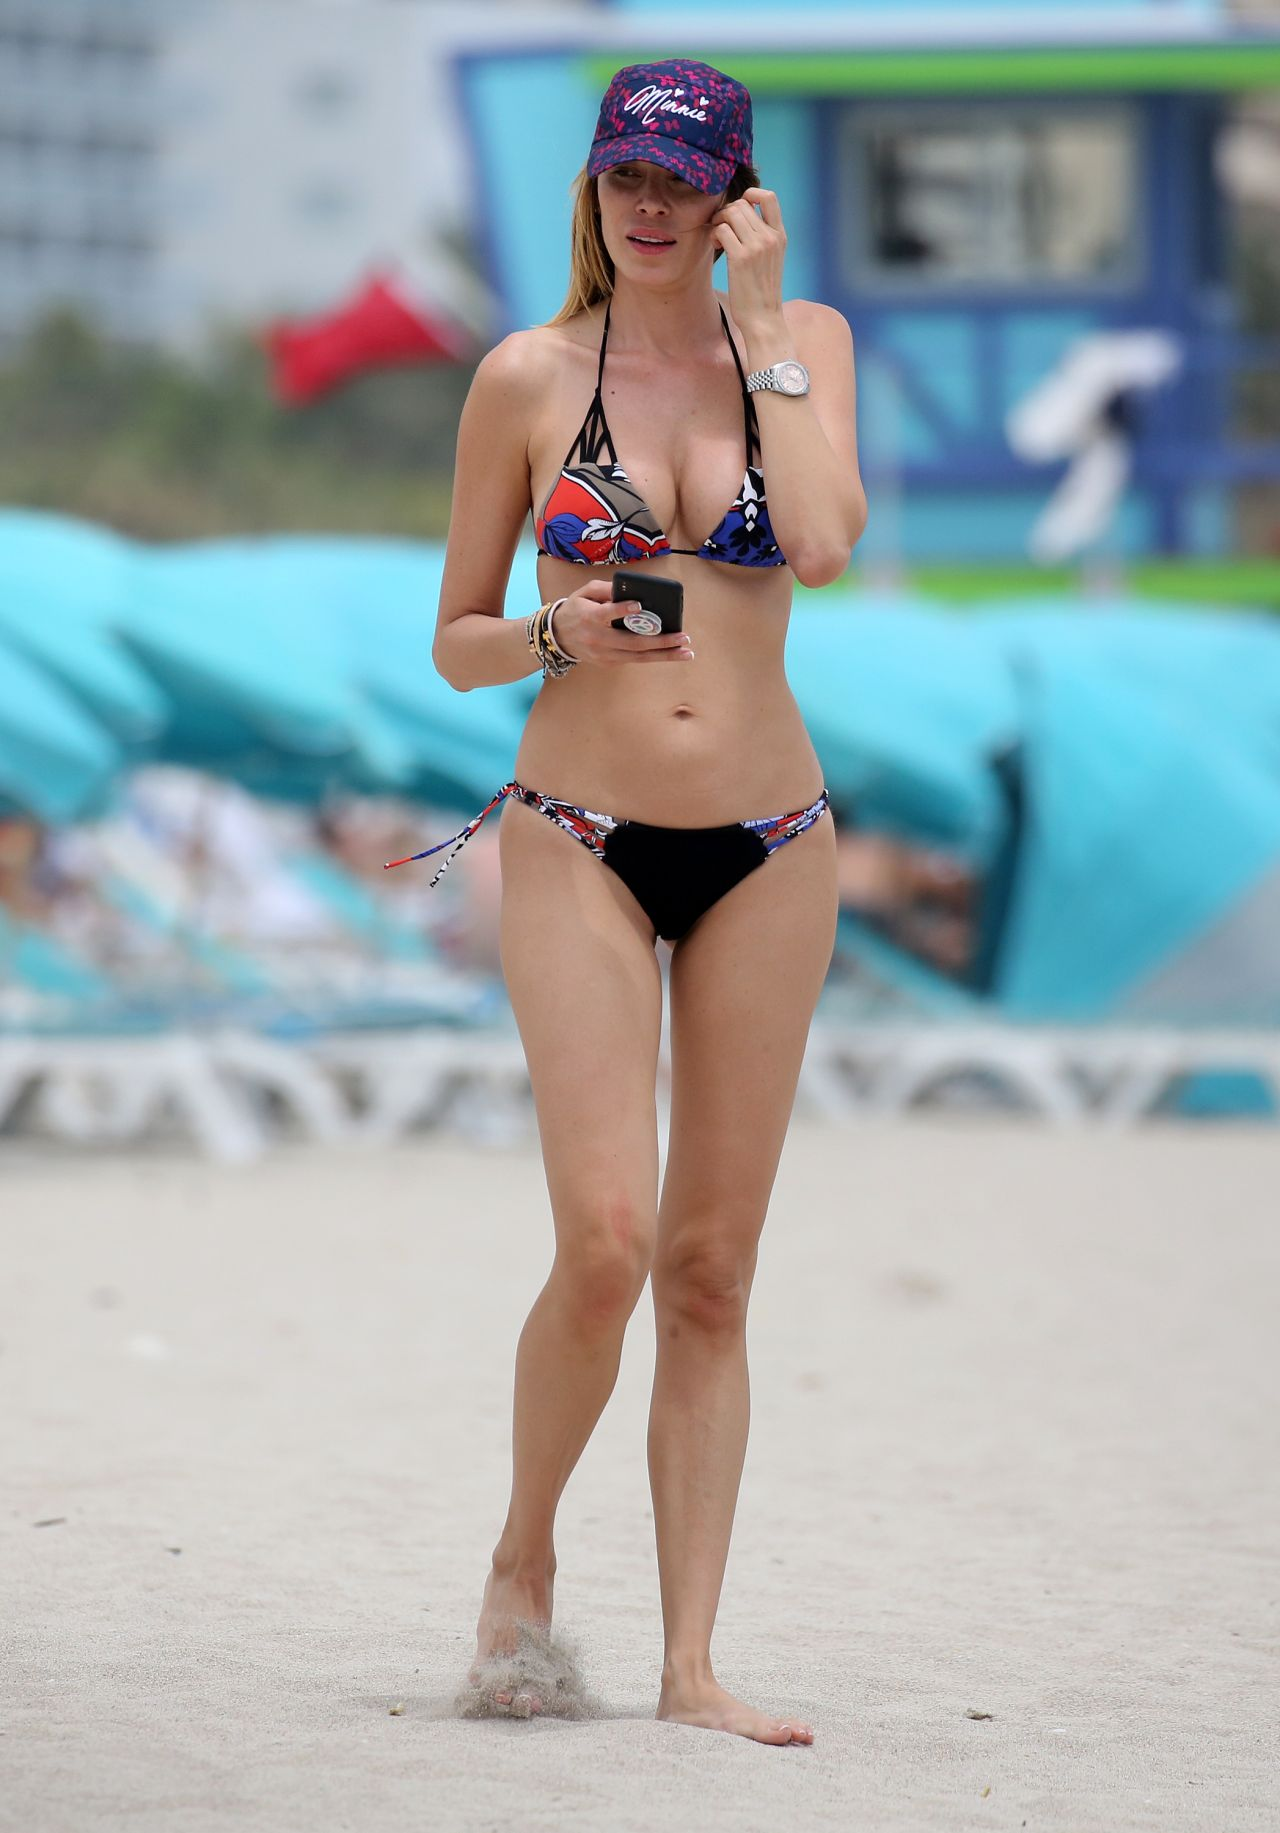 images Aida Yespica Looking Busty On A Beach. 2018-2019 celebrityes photos leaks!